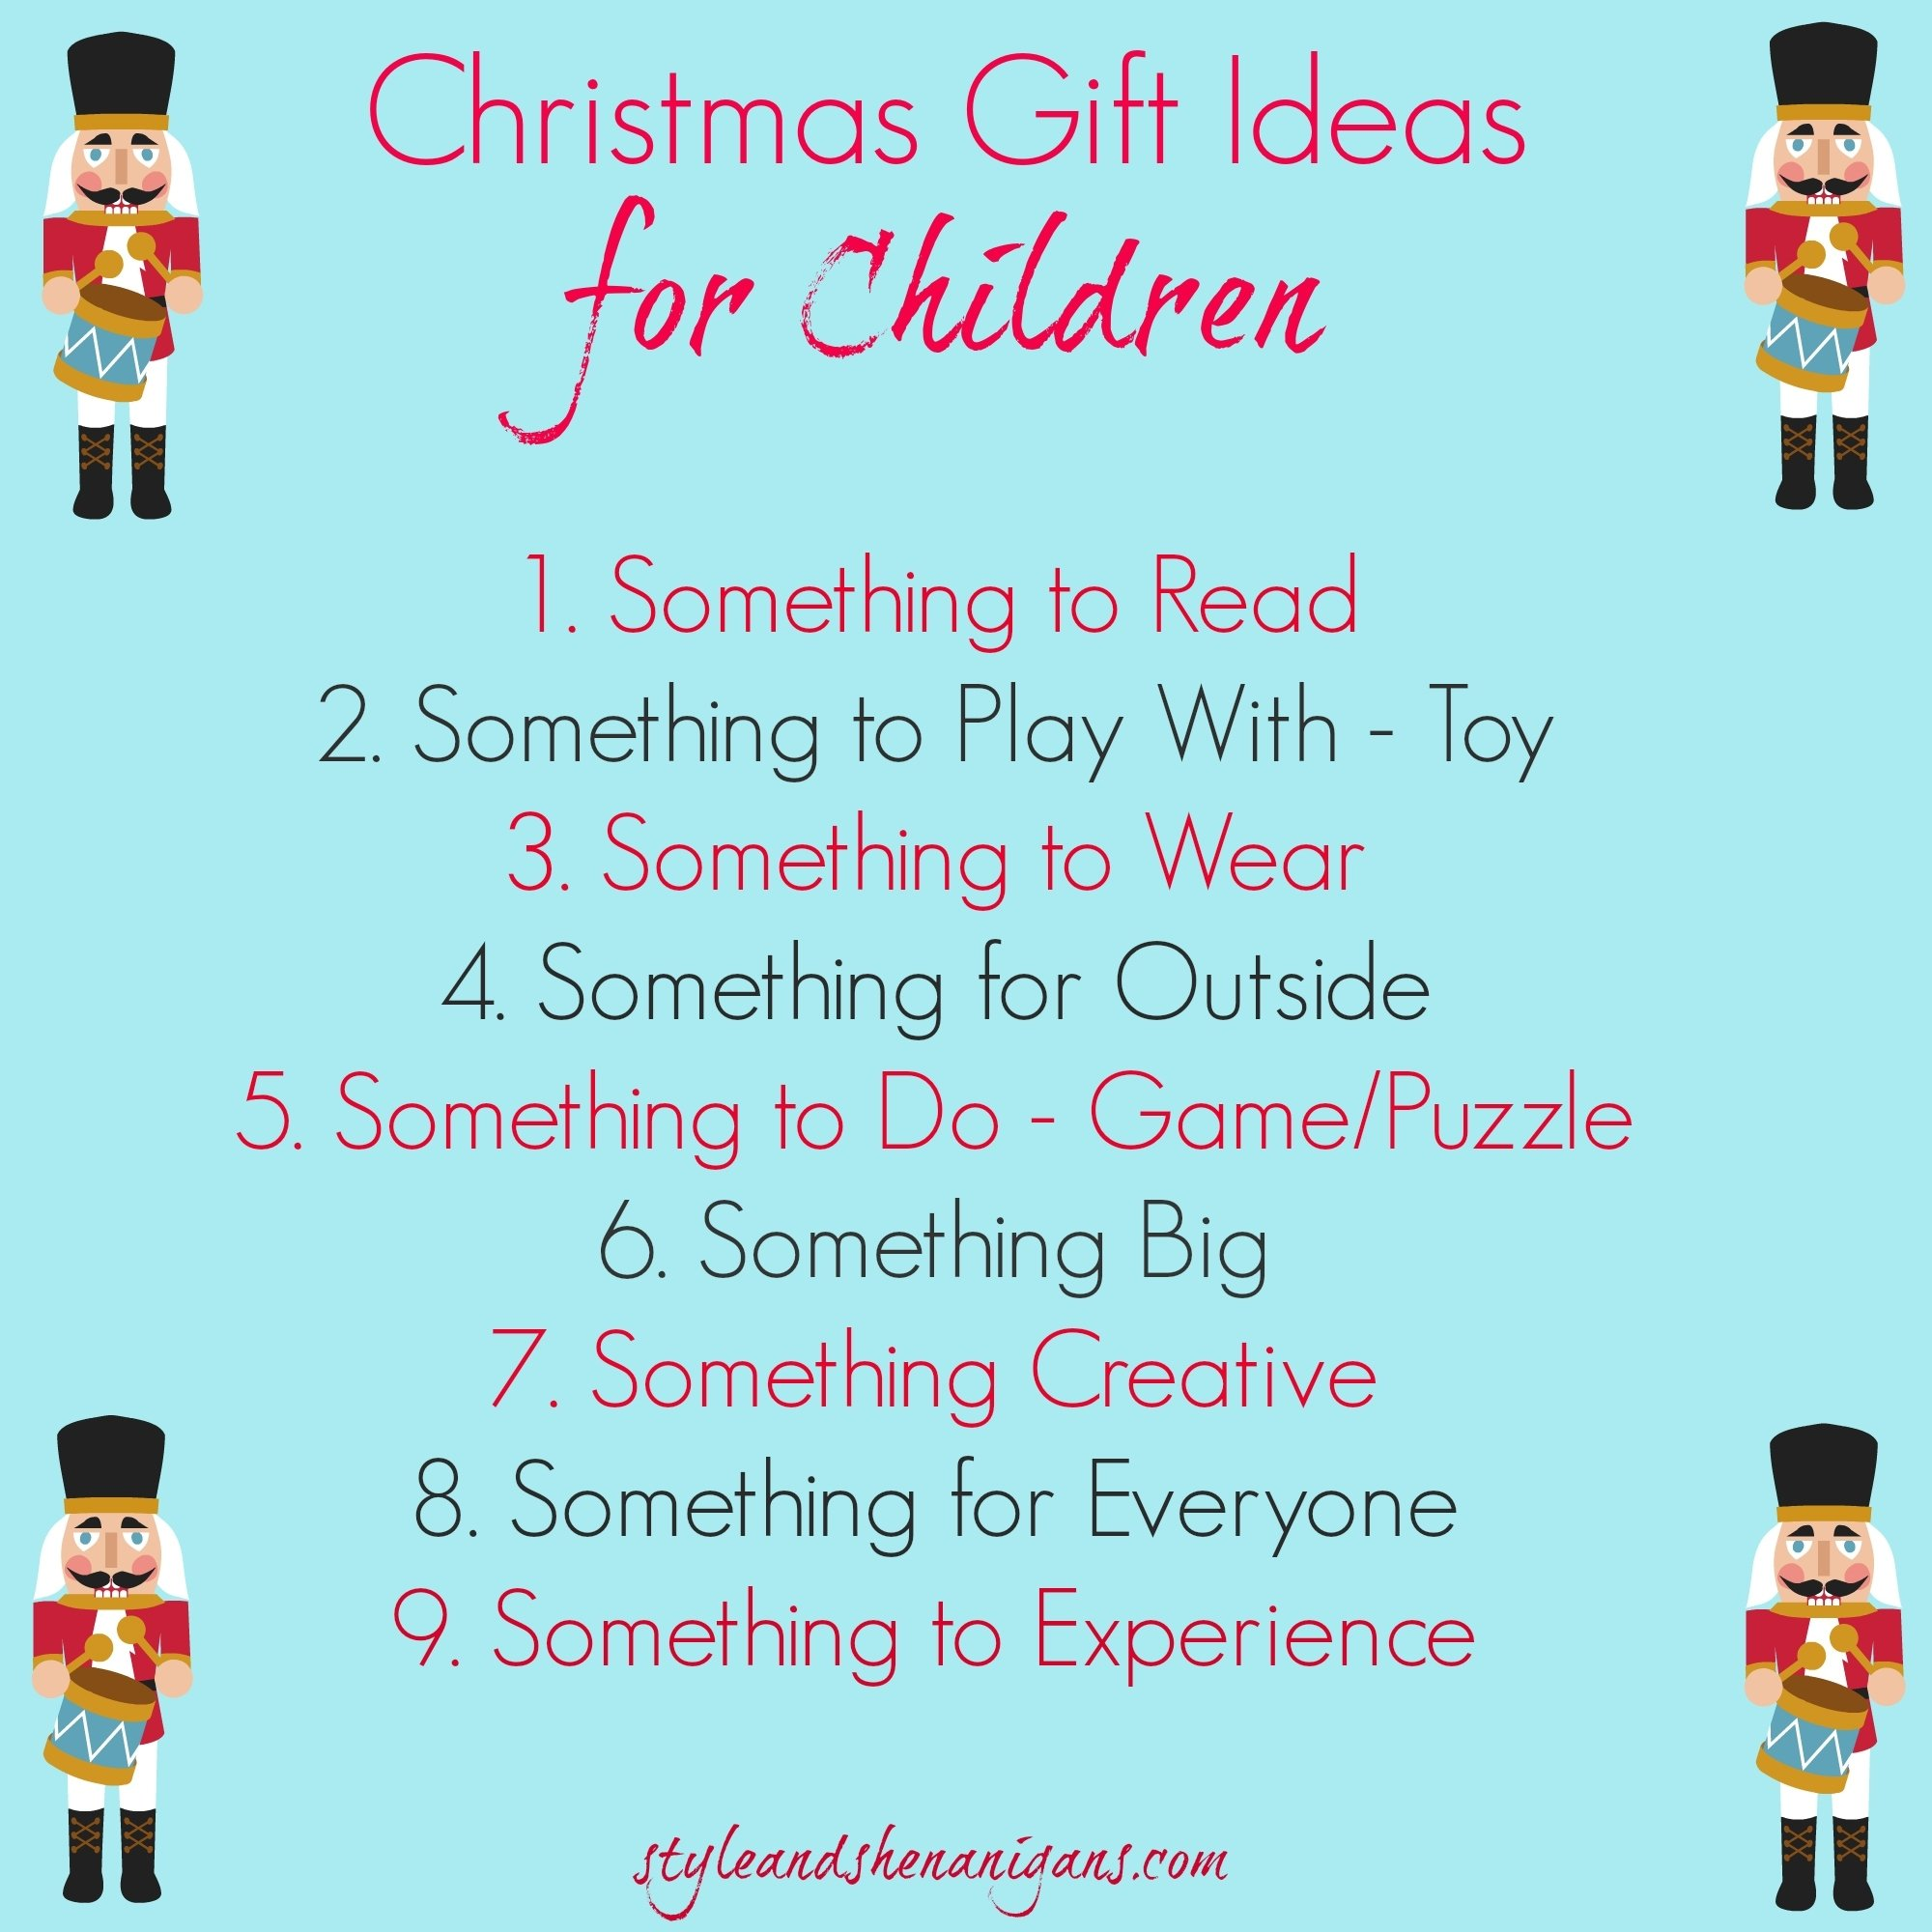 10 Fabulous Christmas Gift Ideas For Kids christmas gift ideas for kids christmas 2014 style shenanigans 3 2020